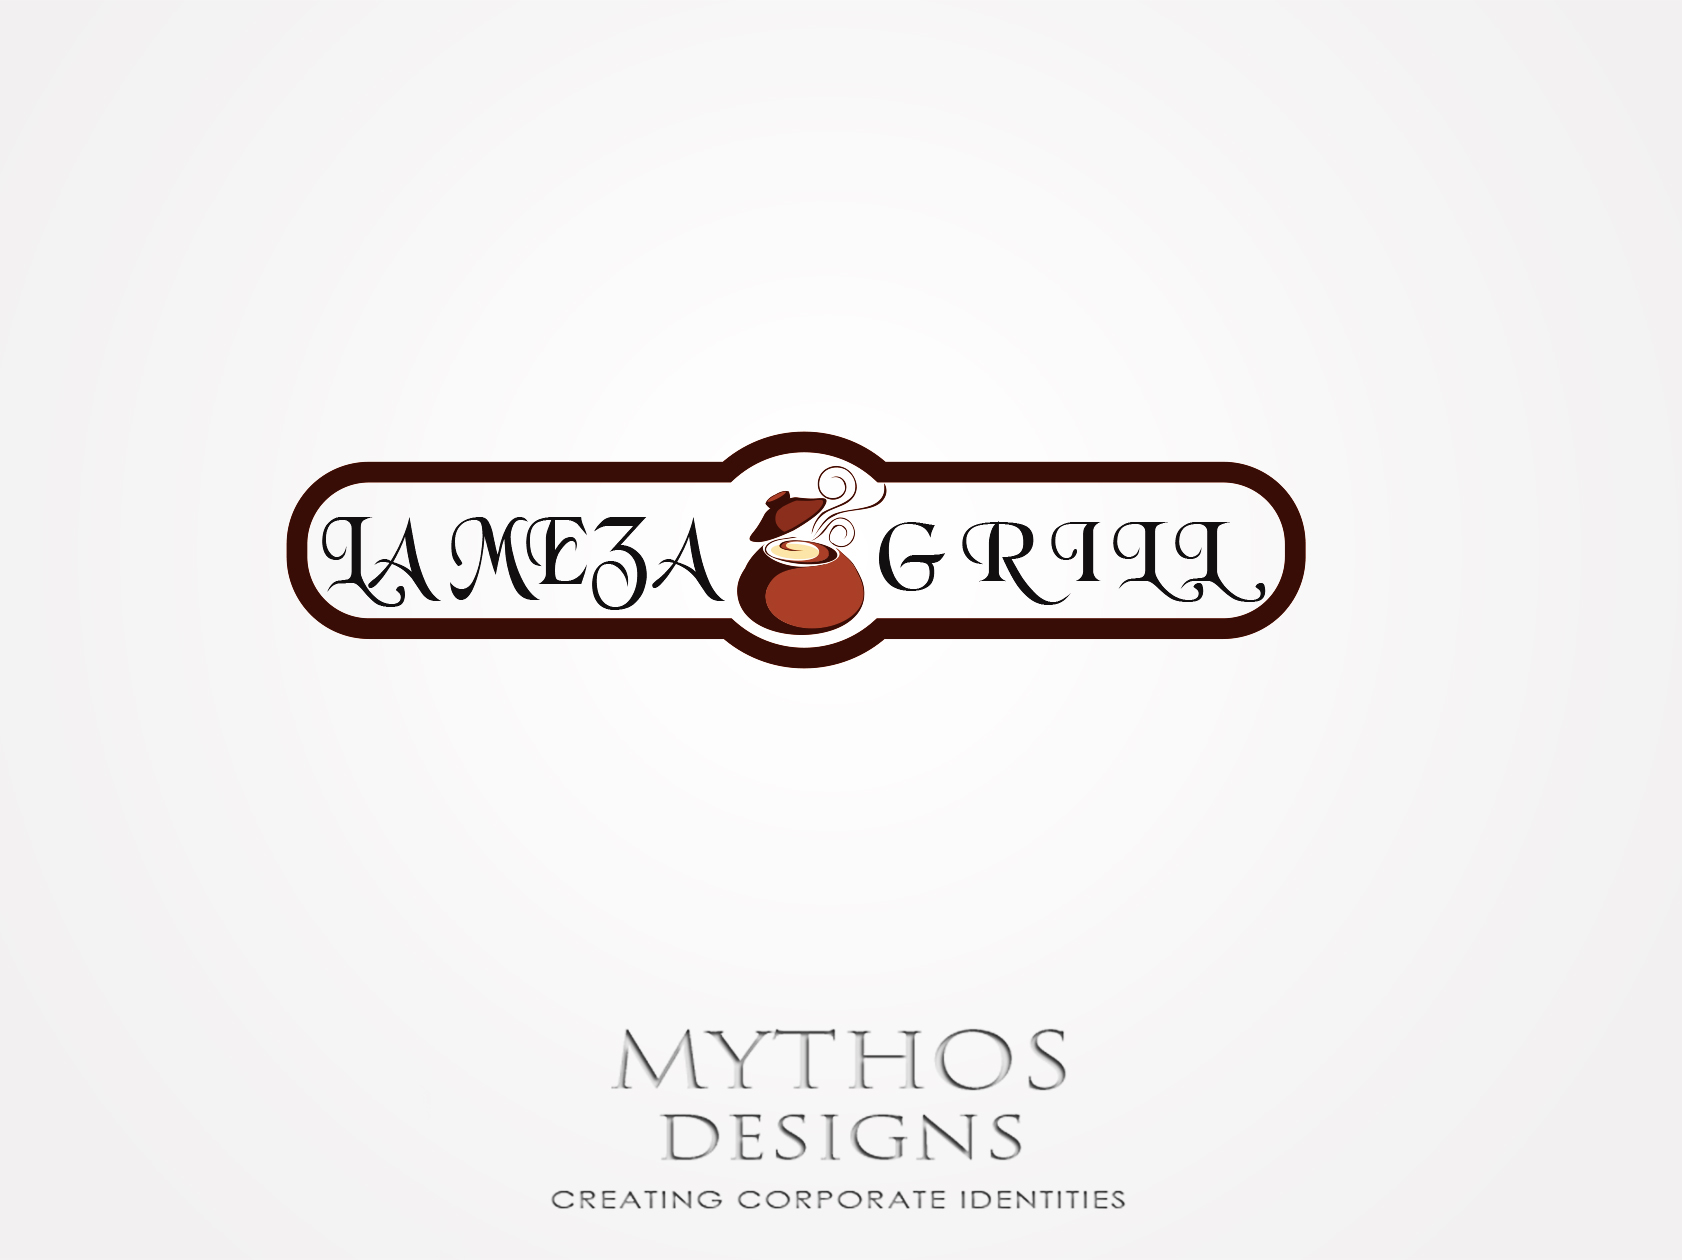 Logo Design by Mythos Designs - Entry No. 9 in the Logo Design Contest Inspiring Logo Design for La Meza Grill Ltd..